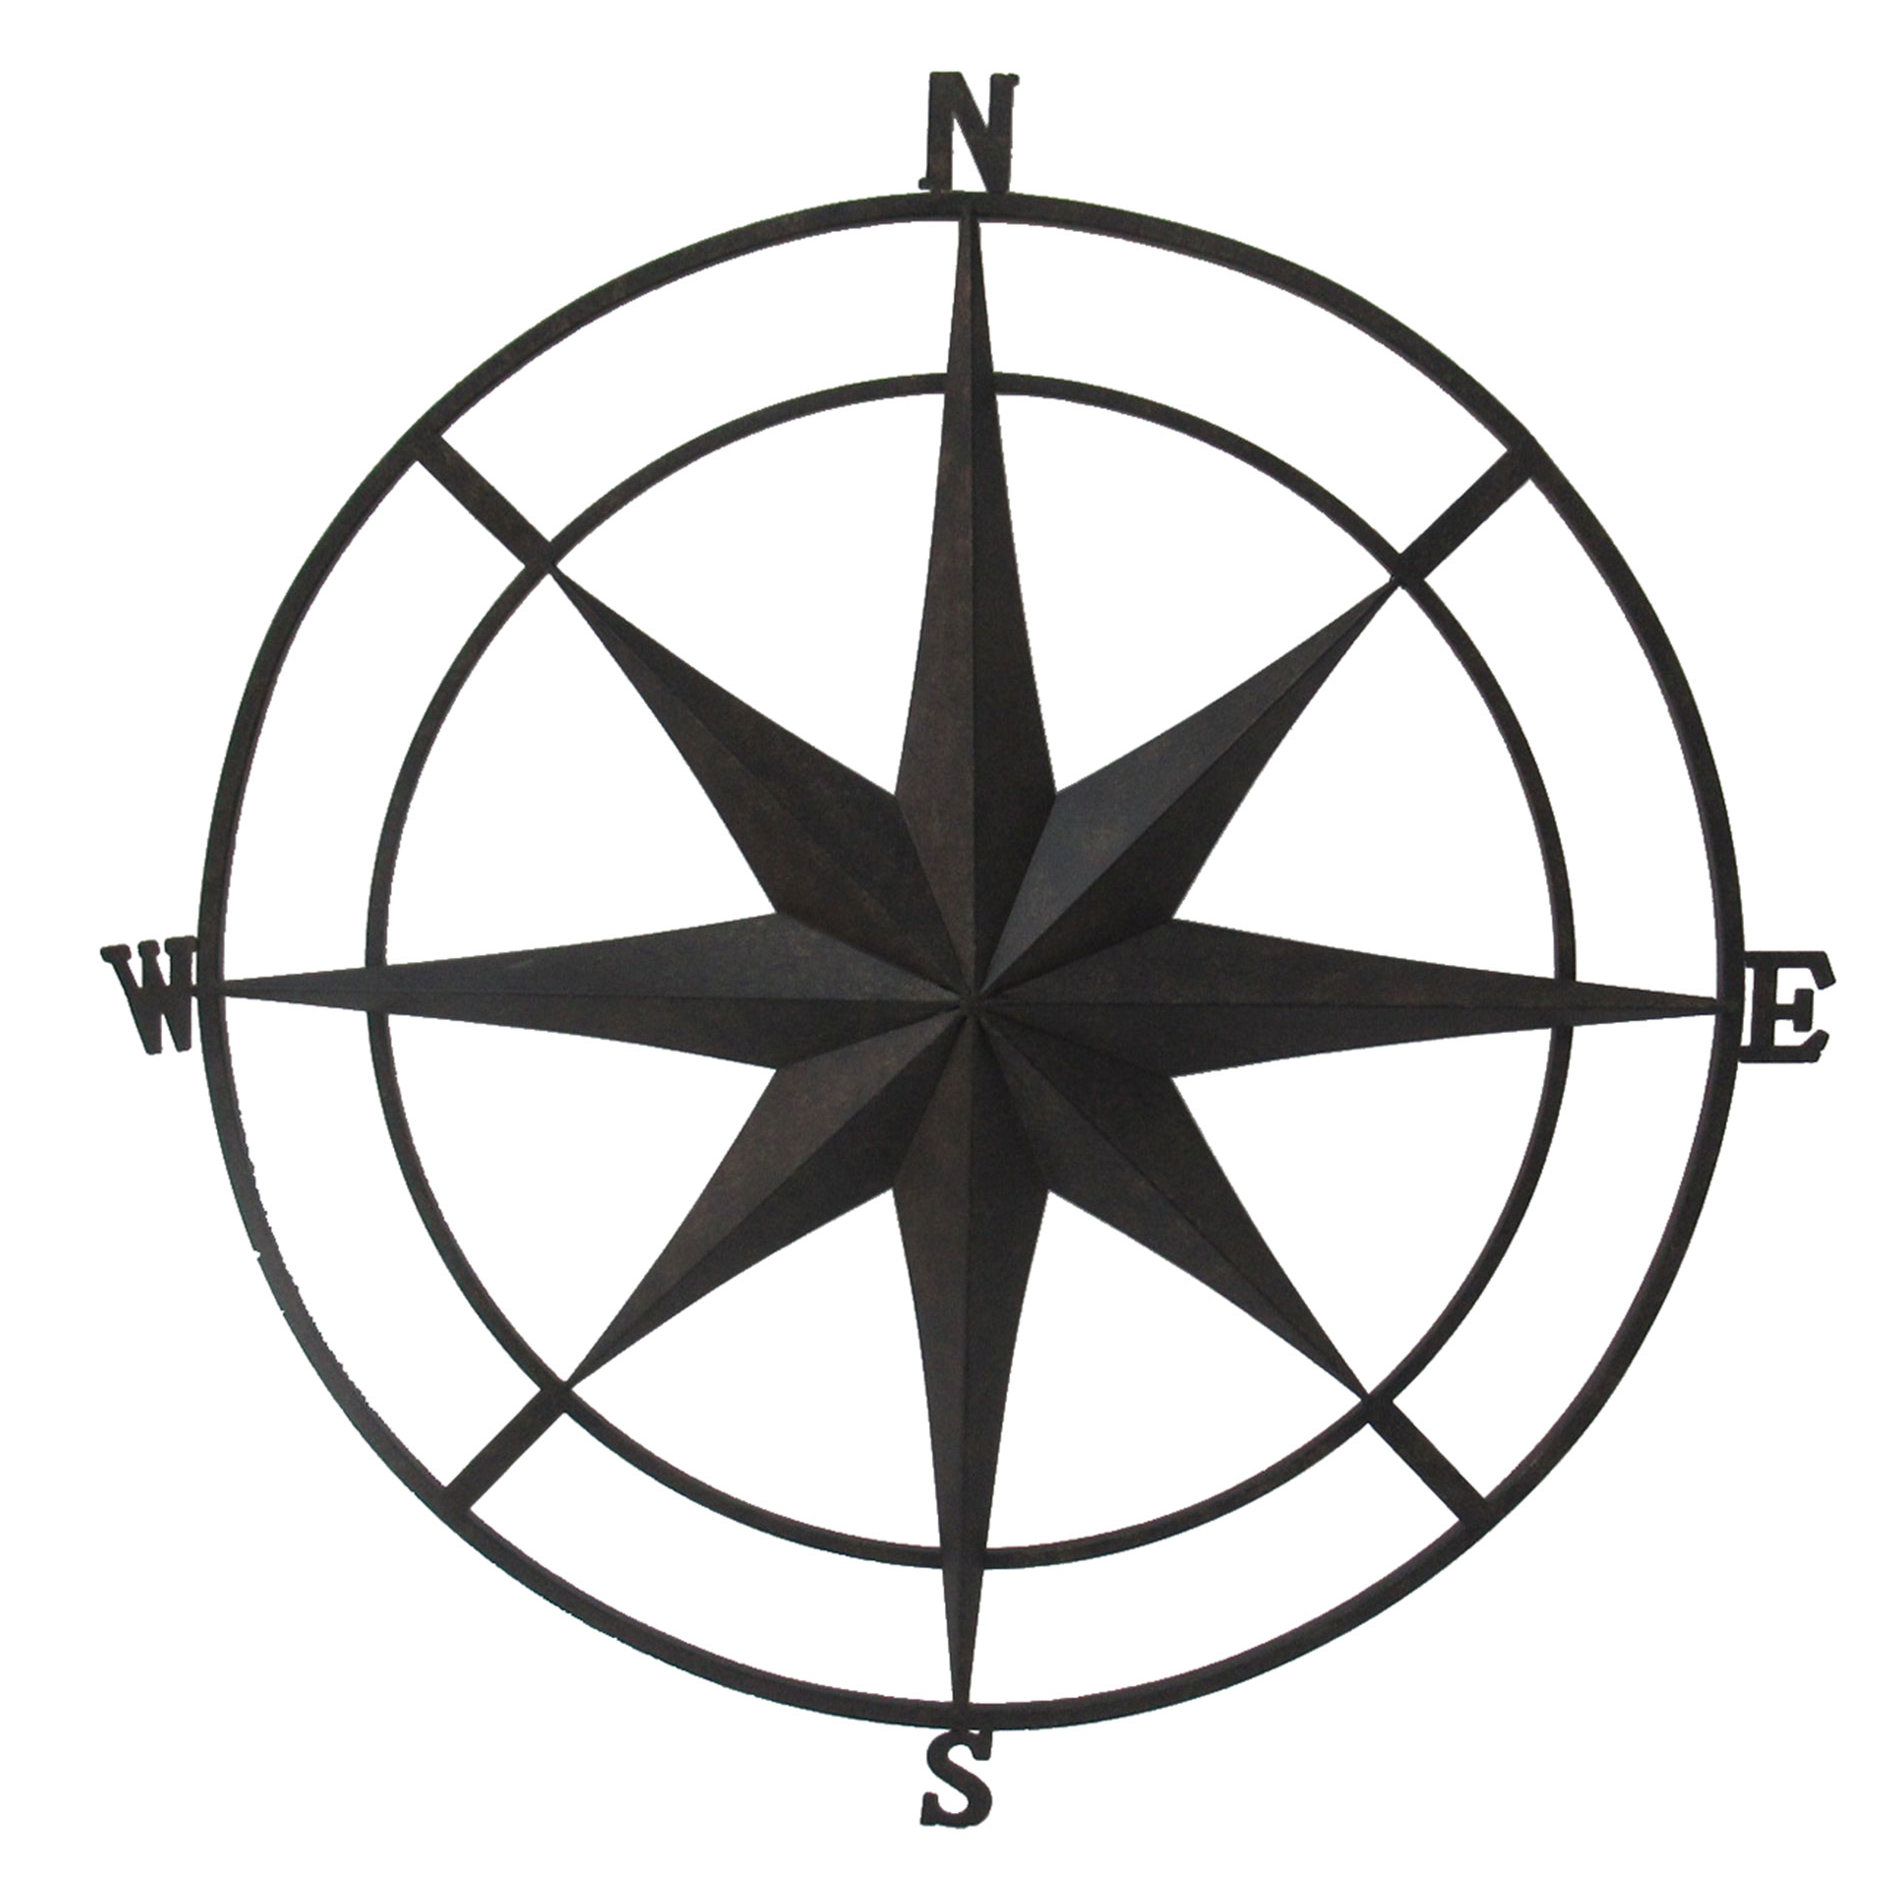 Gracie Oaks Outdoor Metal Wall Compass & Reviews | Wayfair with regard to Outdoor Metal Wall Compass (Image 21 of 30)